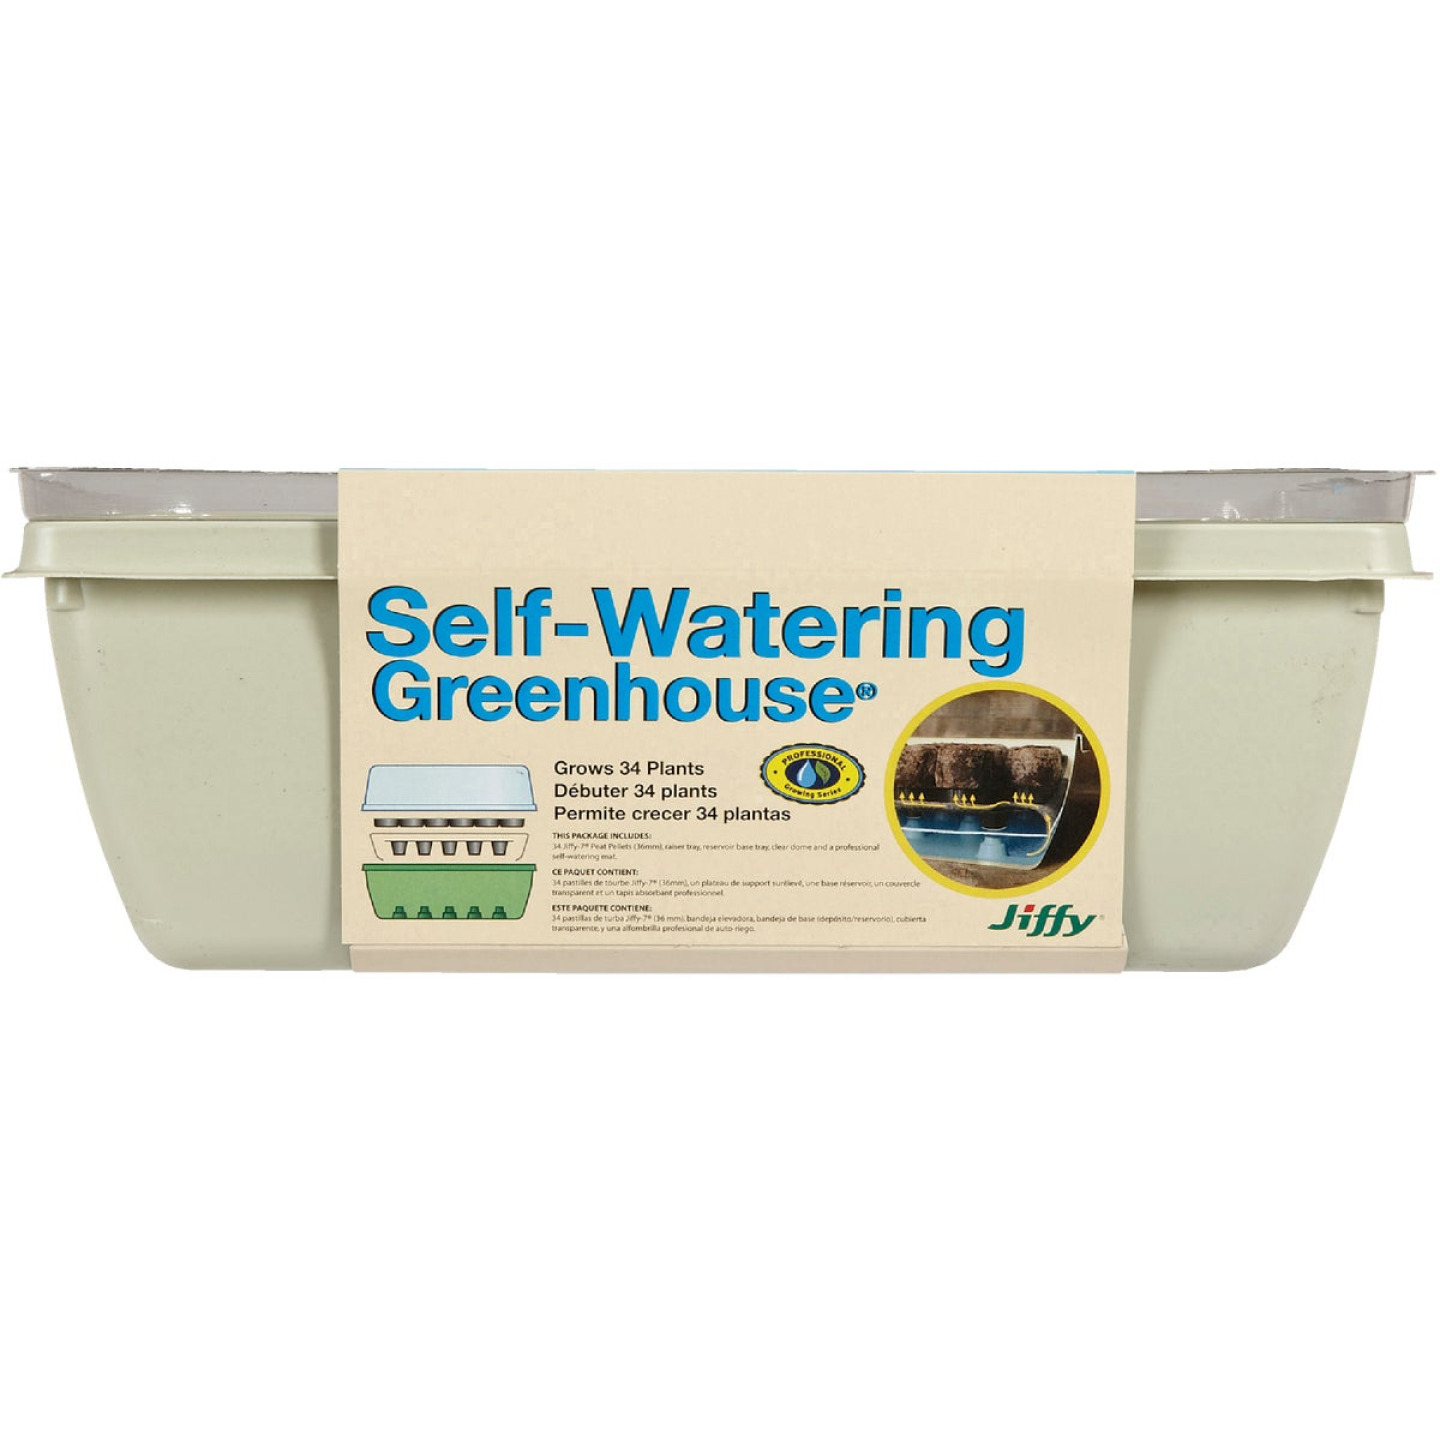 Jiffy 34-Cell 11 In. x 11 In. Self Watering Greenhouse Seed Starter Kit Image 2